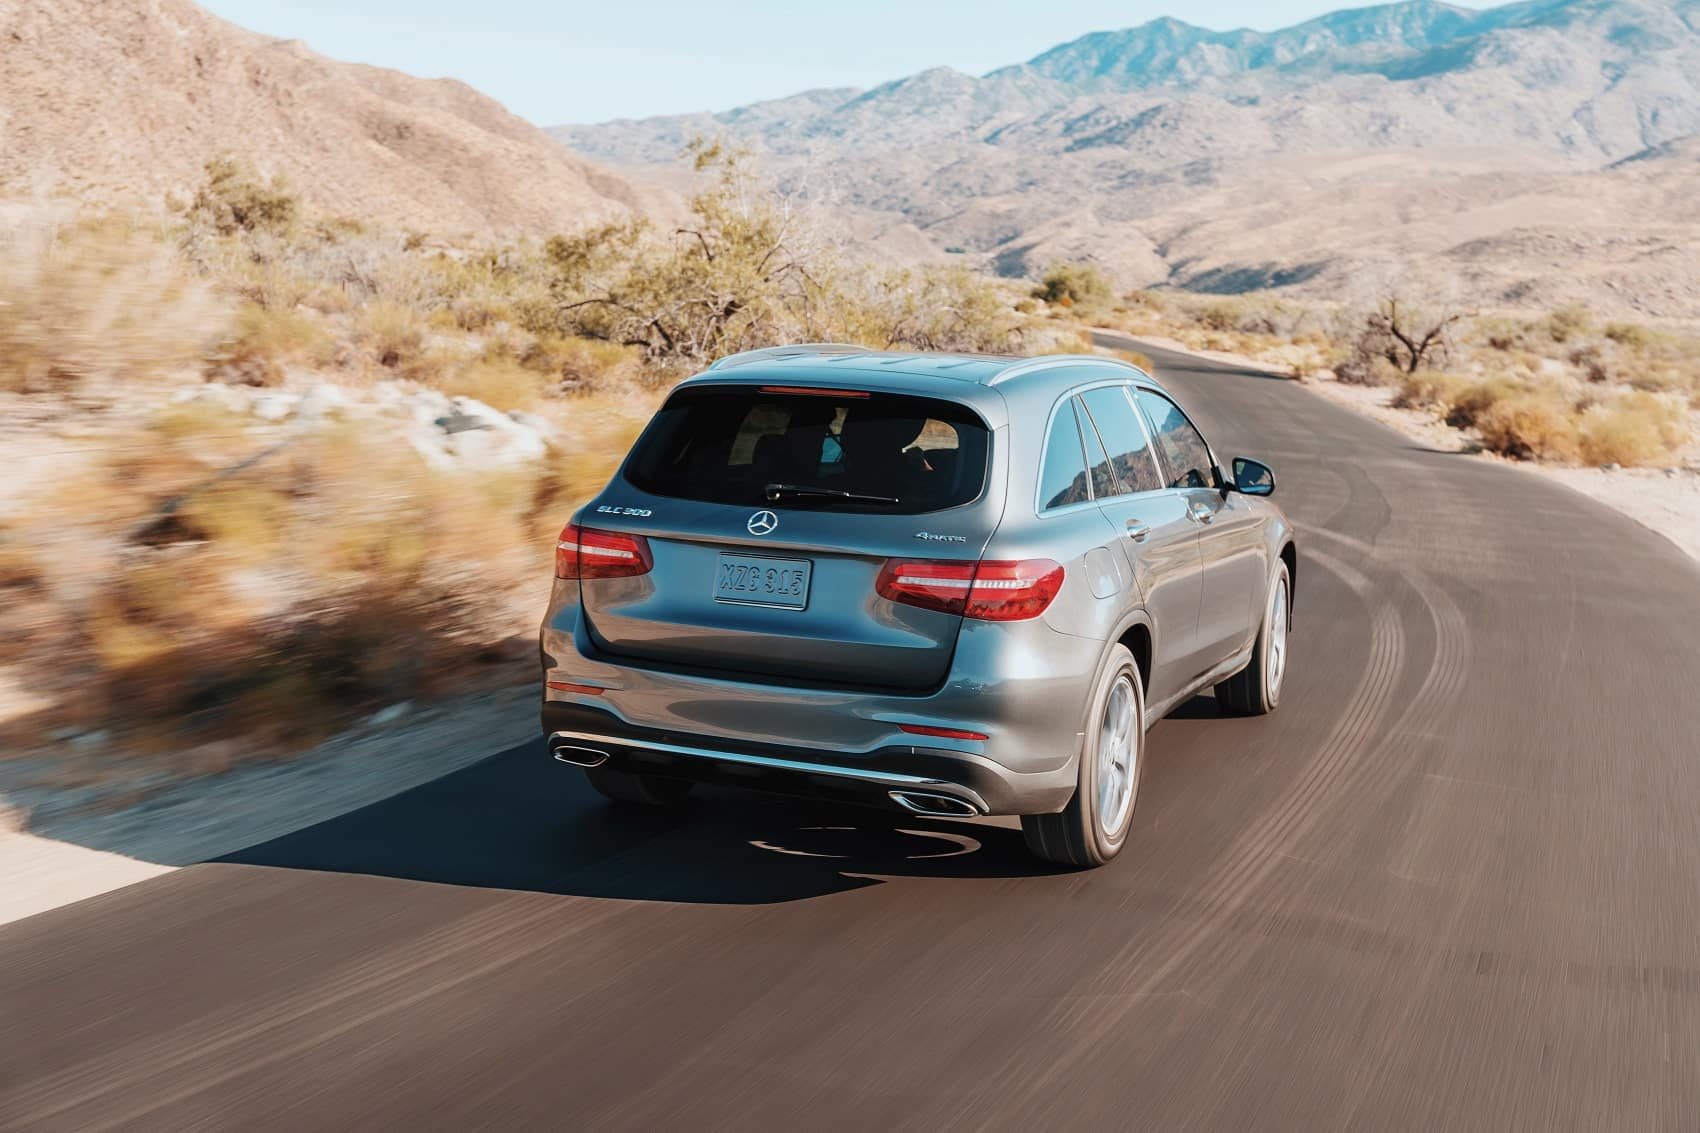 2019 Mercedes GLC Driving